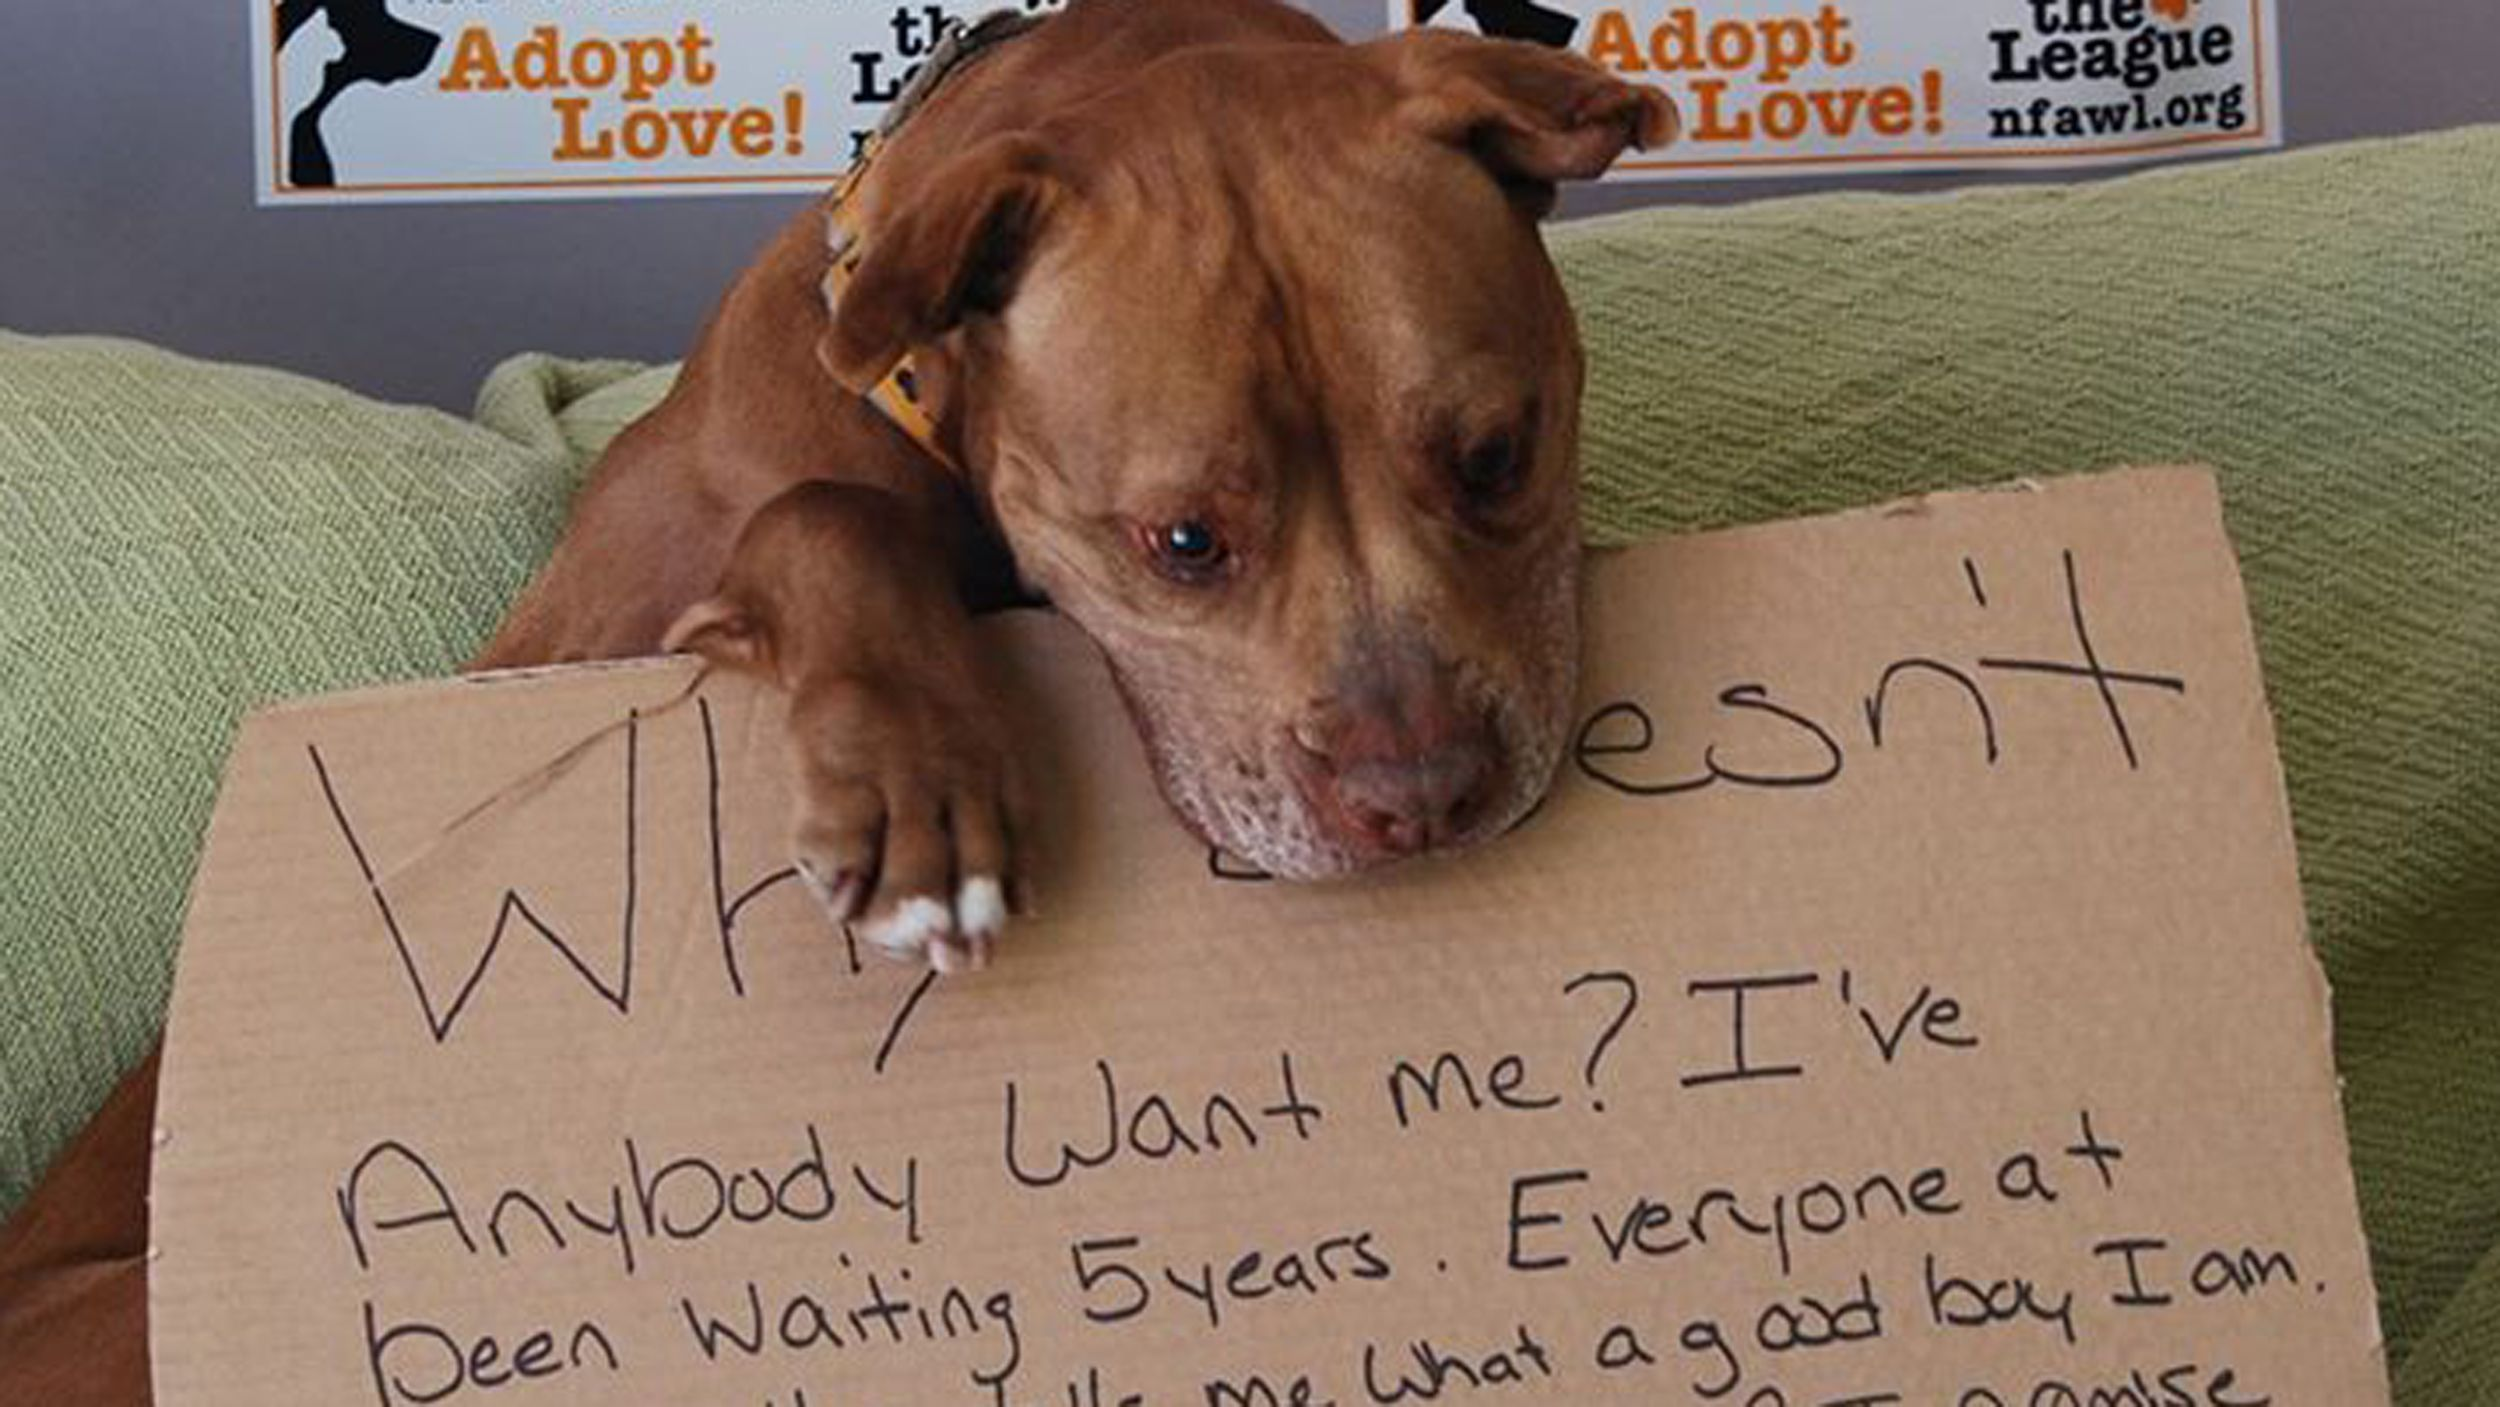 Why Doesn T Anybody Want Me Heart Melting Photo Helps Dog Find Home Pitbulls Dog Waiting Animal Welfare League